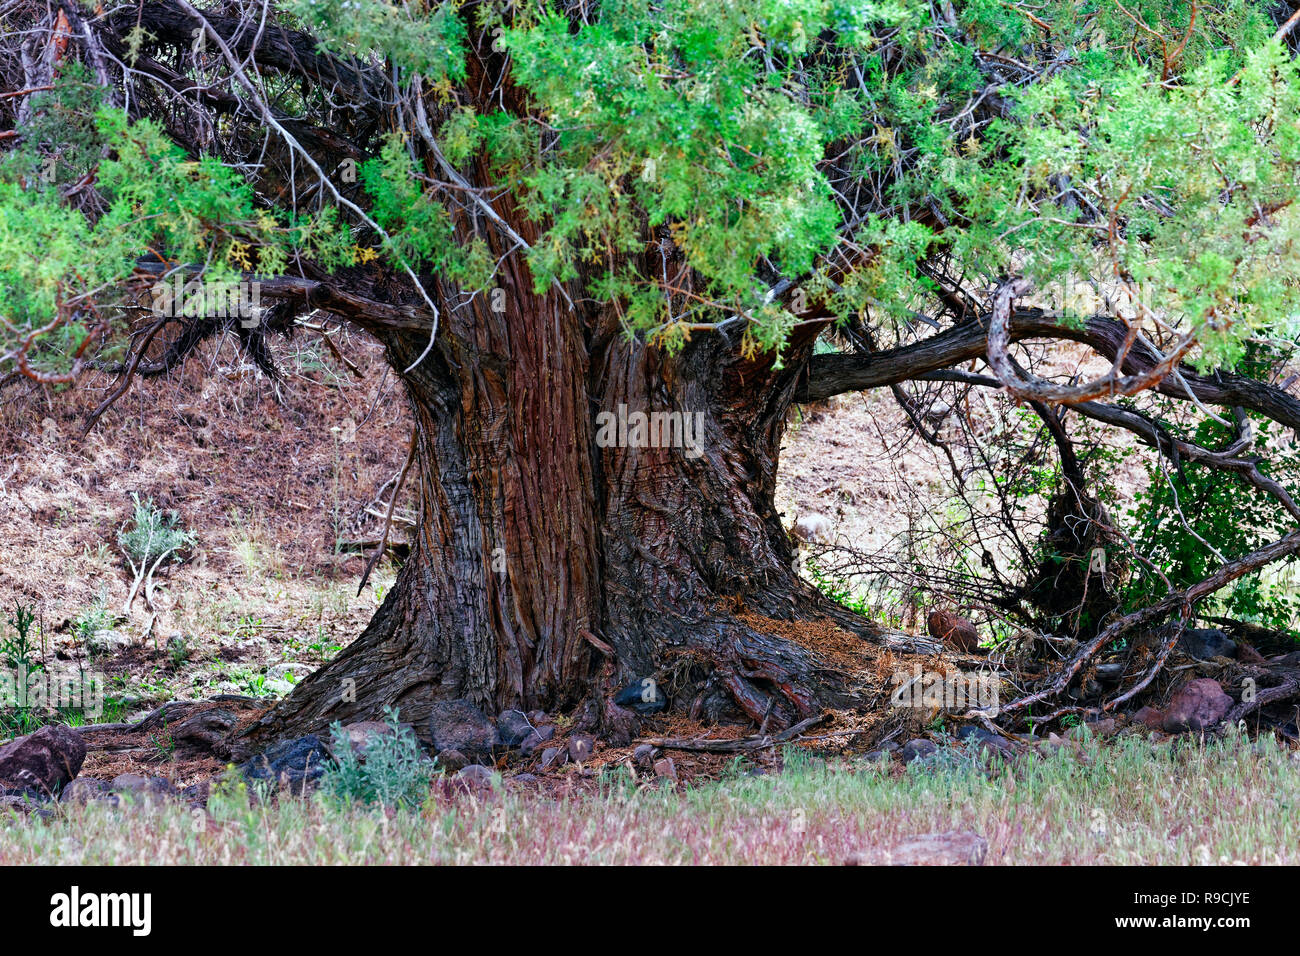 42,893.03473 close up trunk & lower branches 4' diameter old growth western juniper tree (Juniper occidentalis) in high desert central Oregon, USA - Stock Image